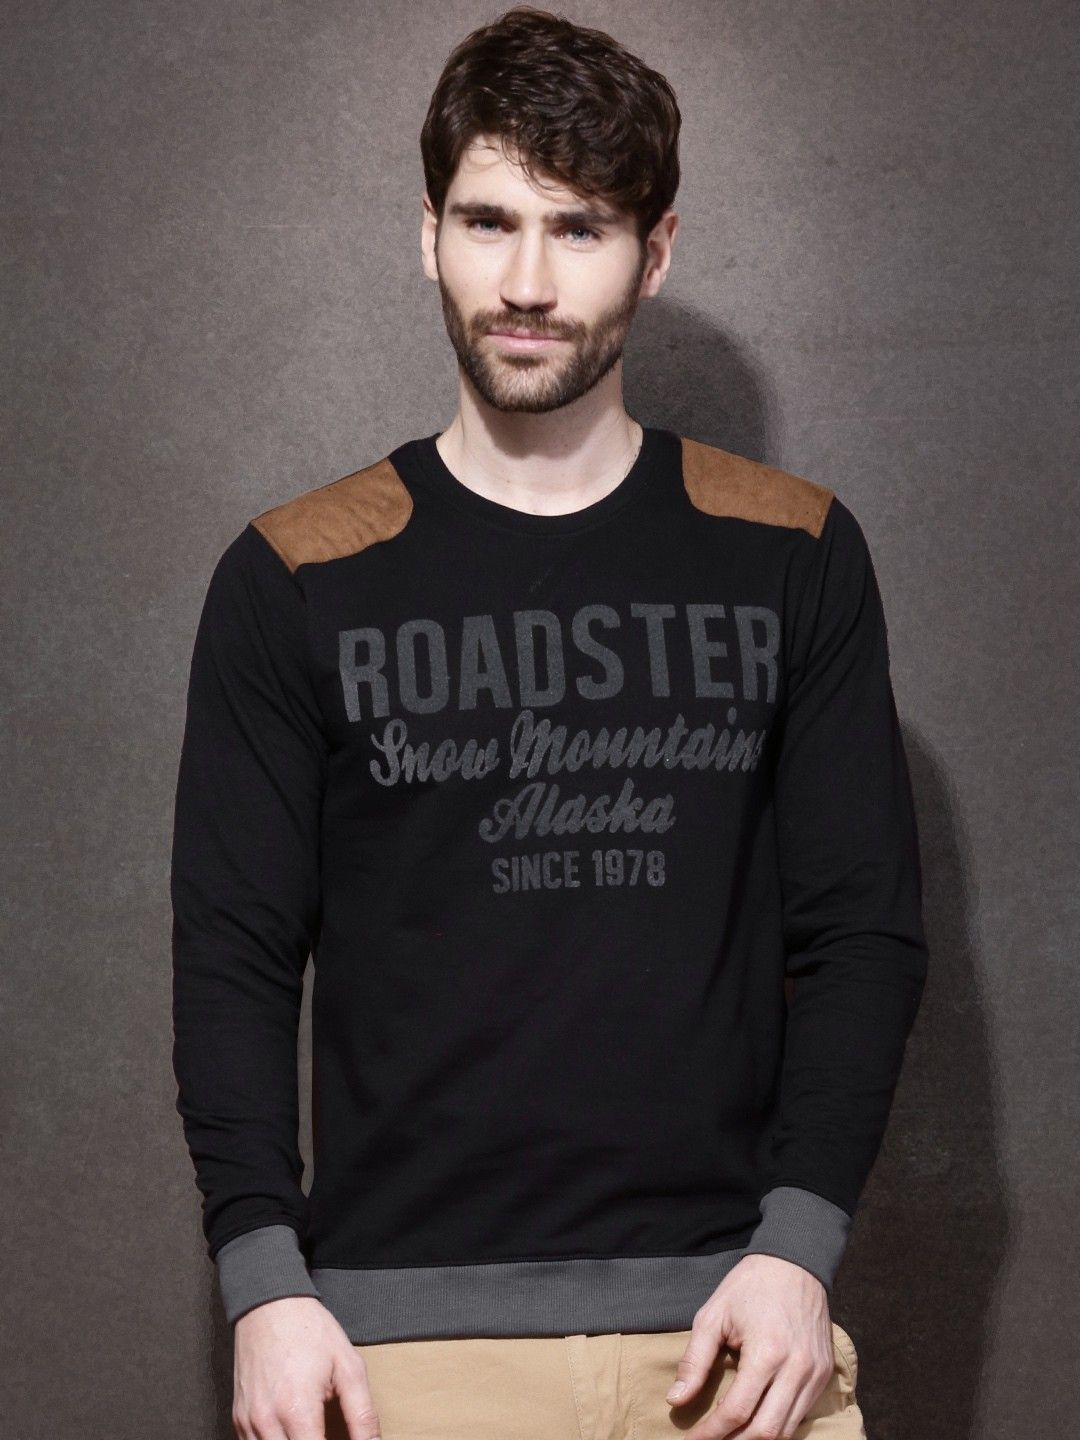 5a470449 Roadster Printed Men's Round Neck T-Shirt | Men T-shirts | Men, T ...